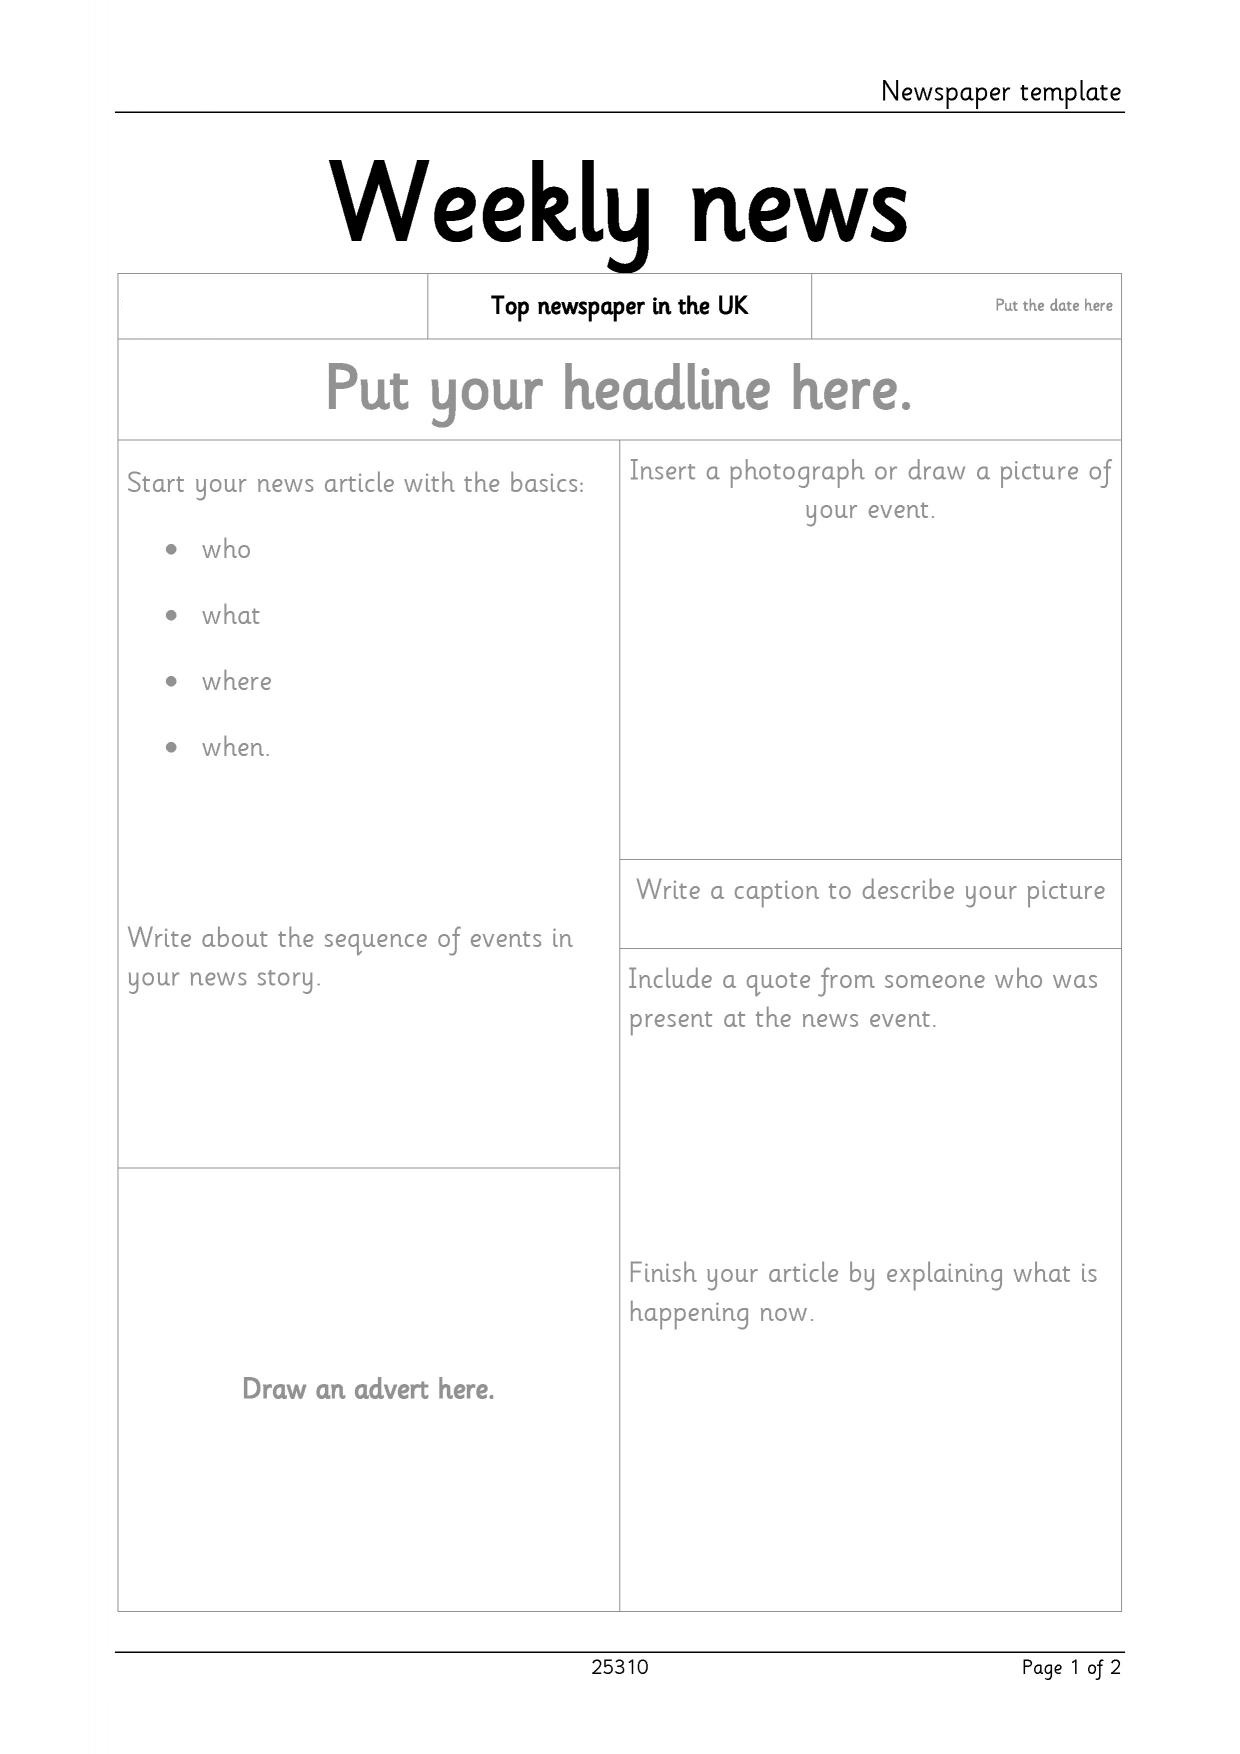 Newspaper Template For Microsoft Word.